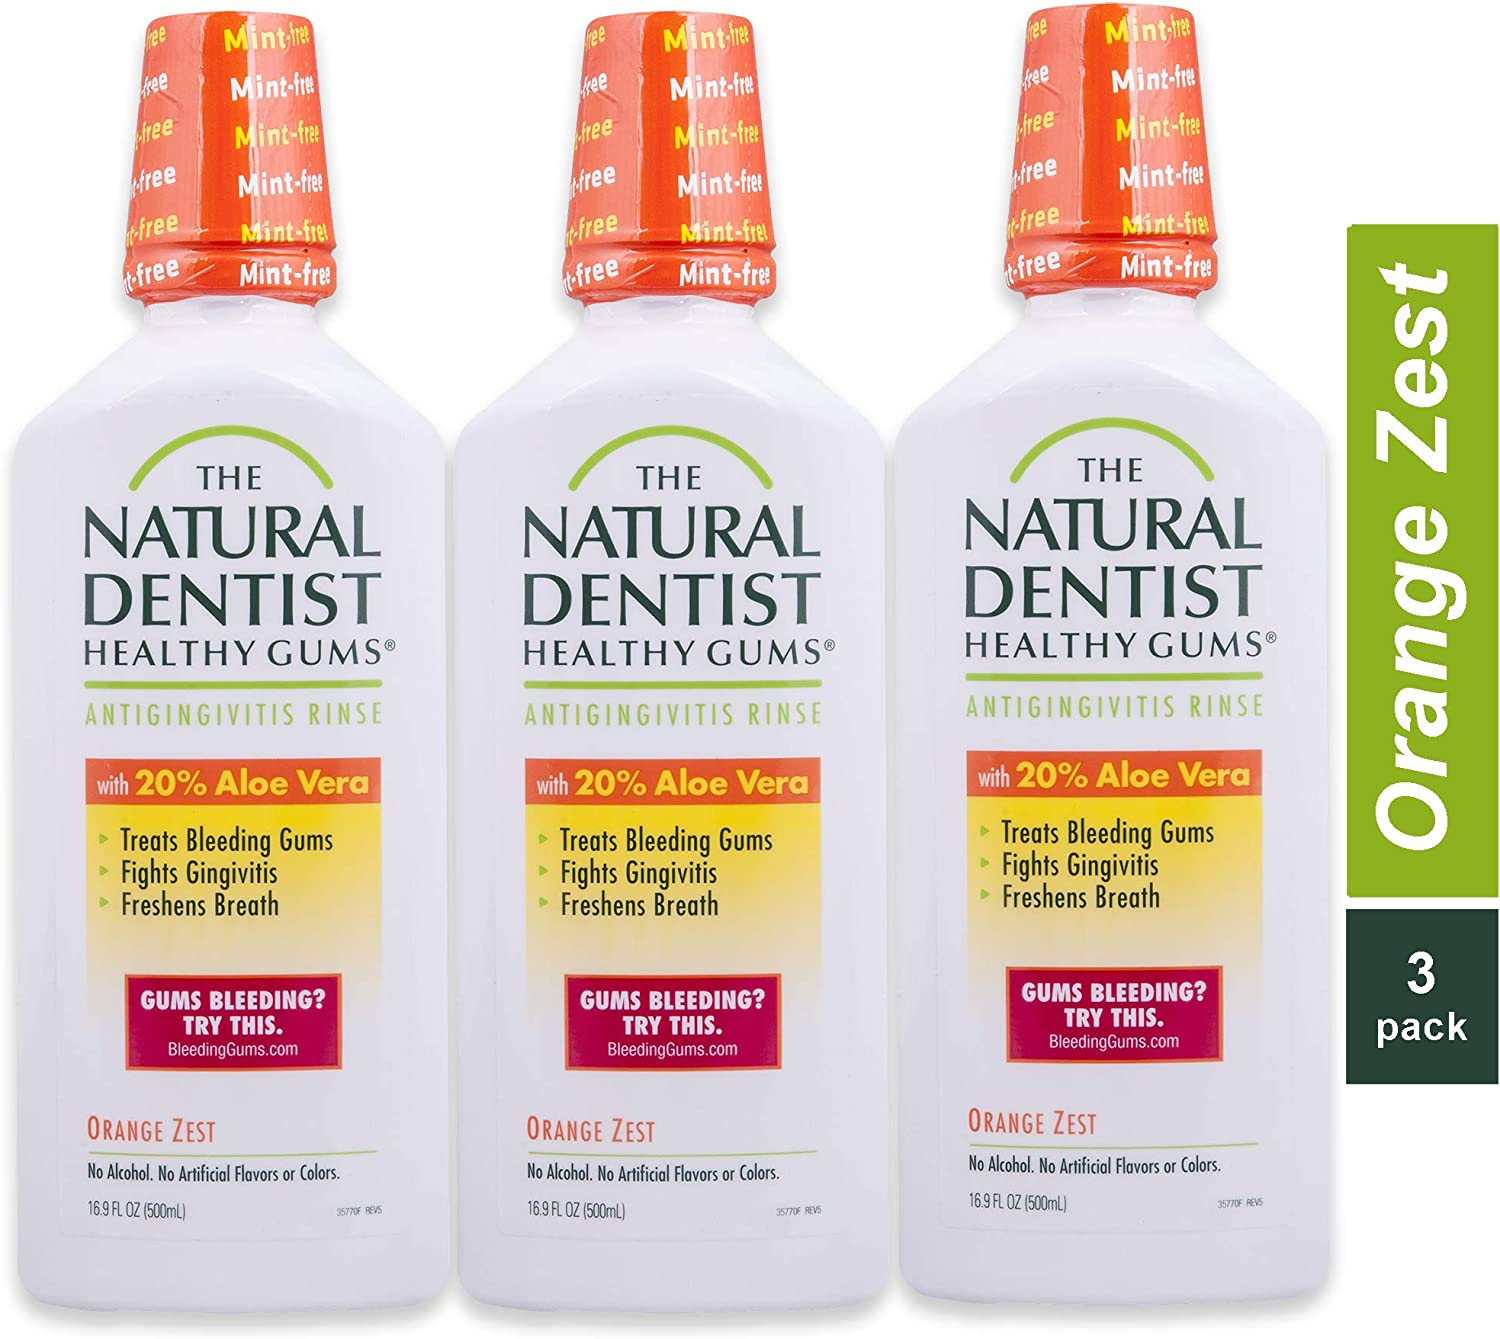 The Natural Dentist Healthy Gums Mouth Wash, Orange Zest, 16.9 Ounce Bottle (Pack of 3)